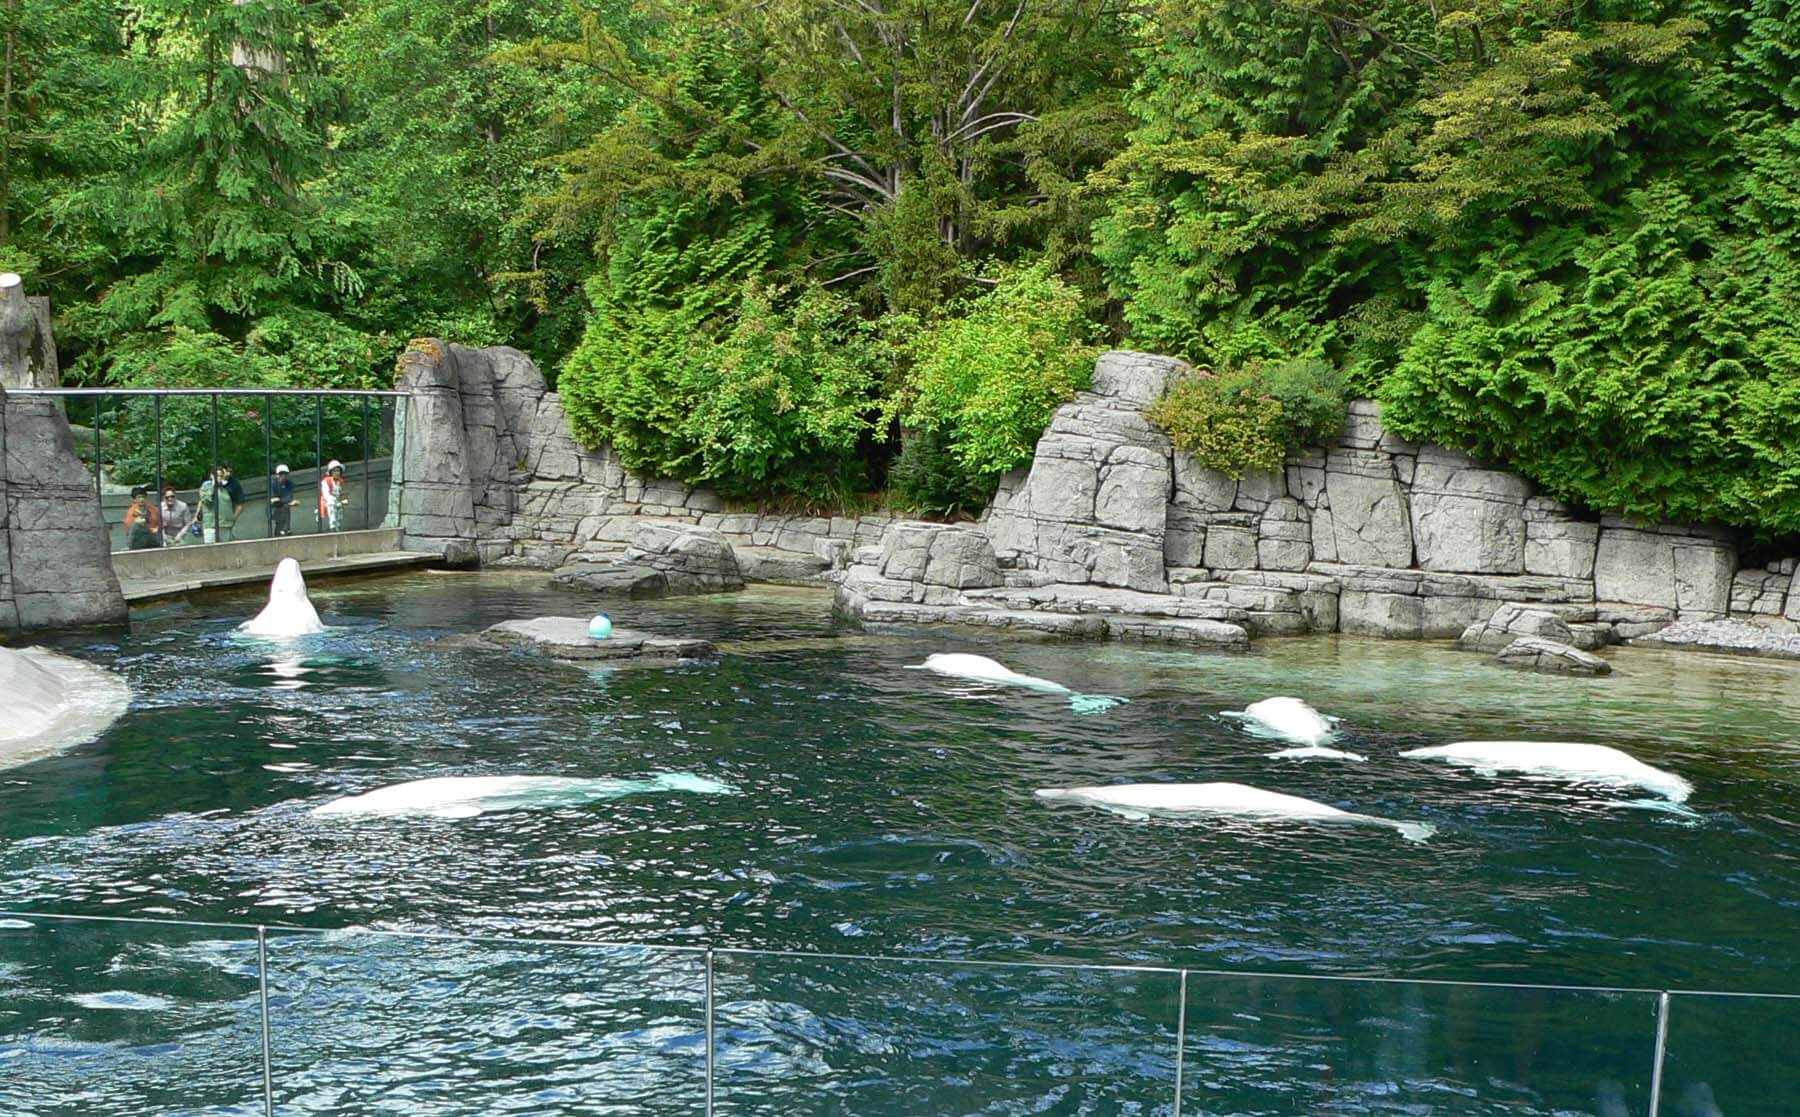 Beluga whales at Vancouver Aquarium in 2005